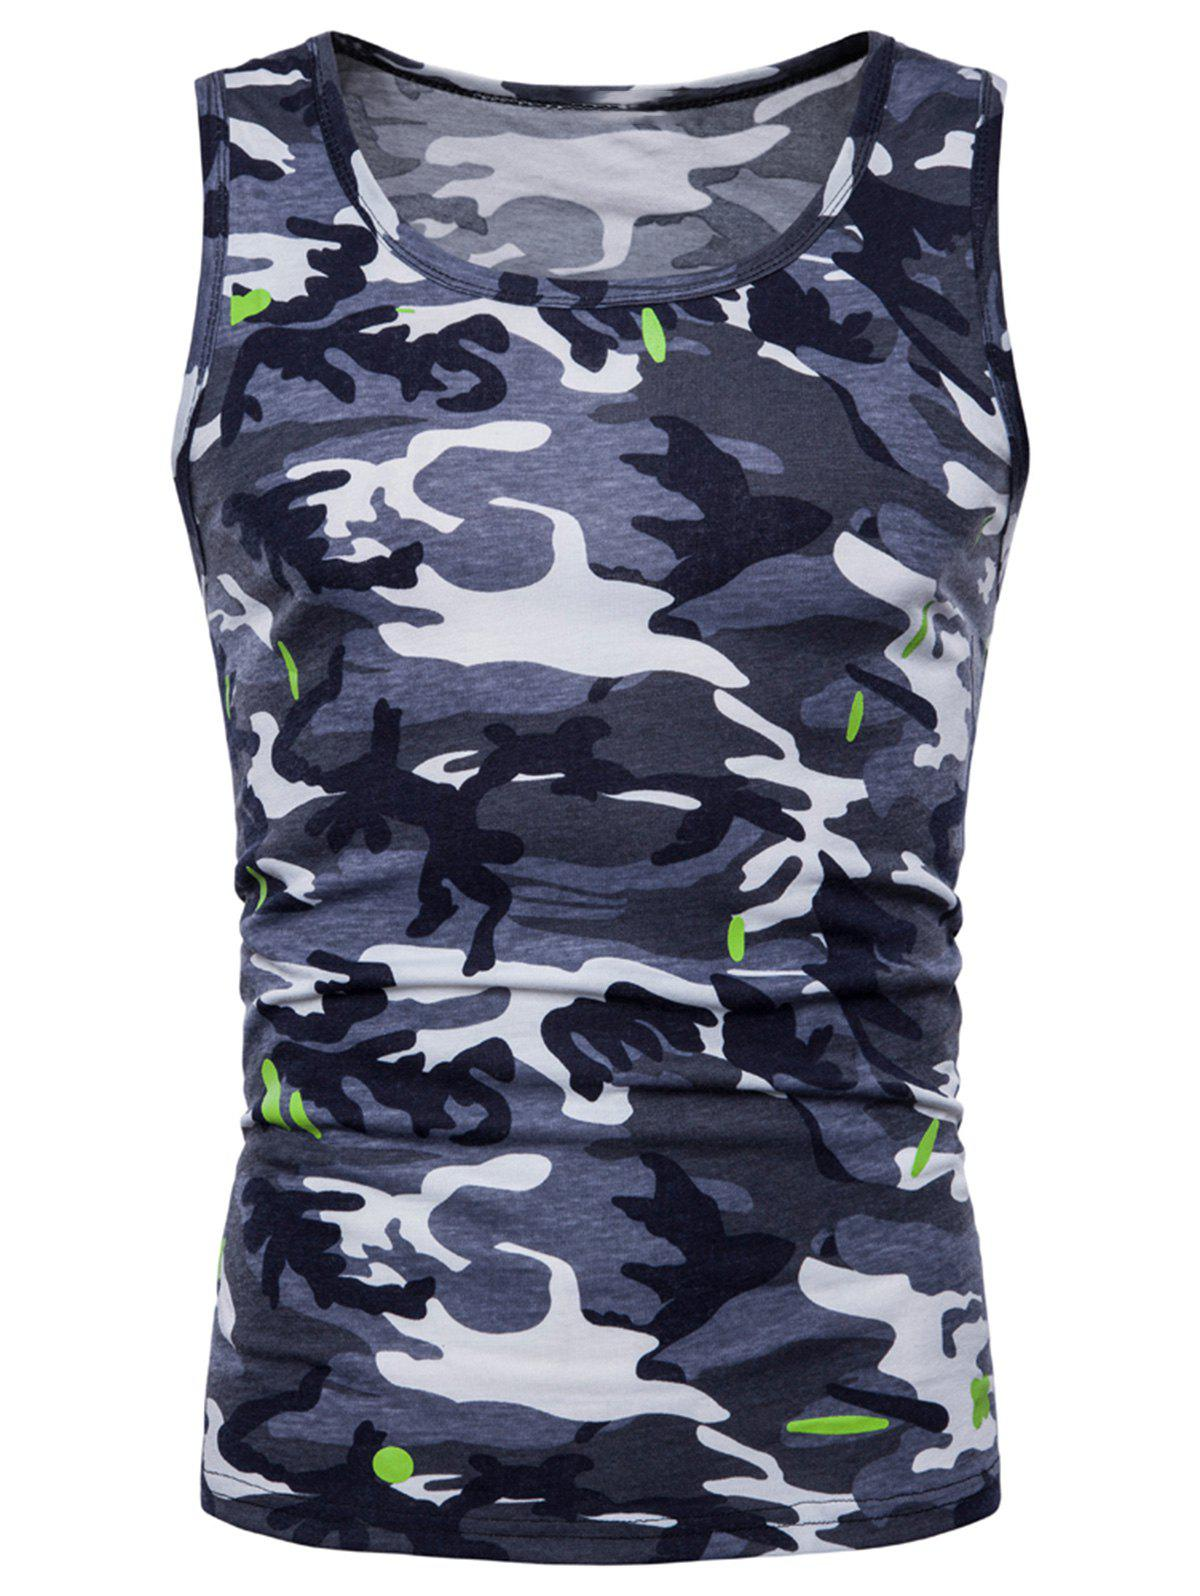 Camouflage Printed Workout Tank Top - GRAY XL